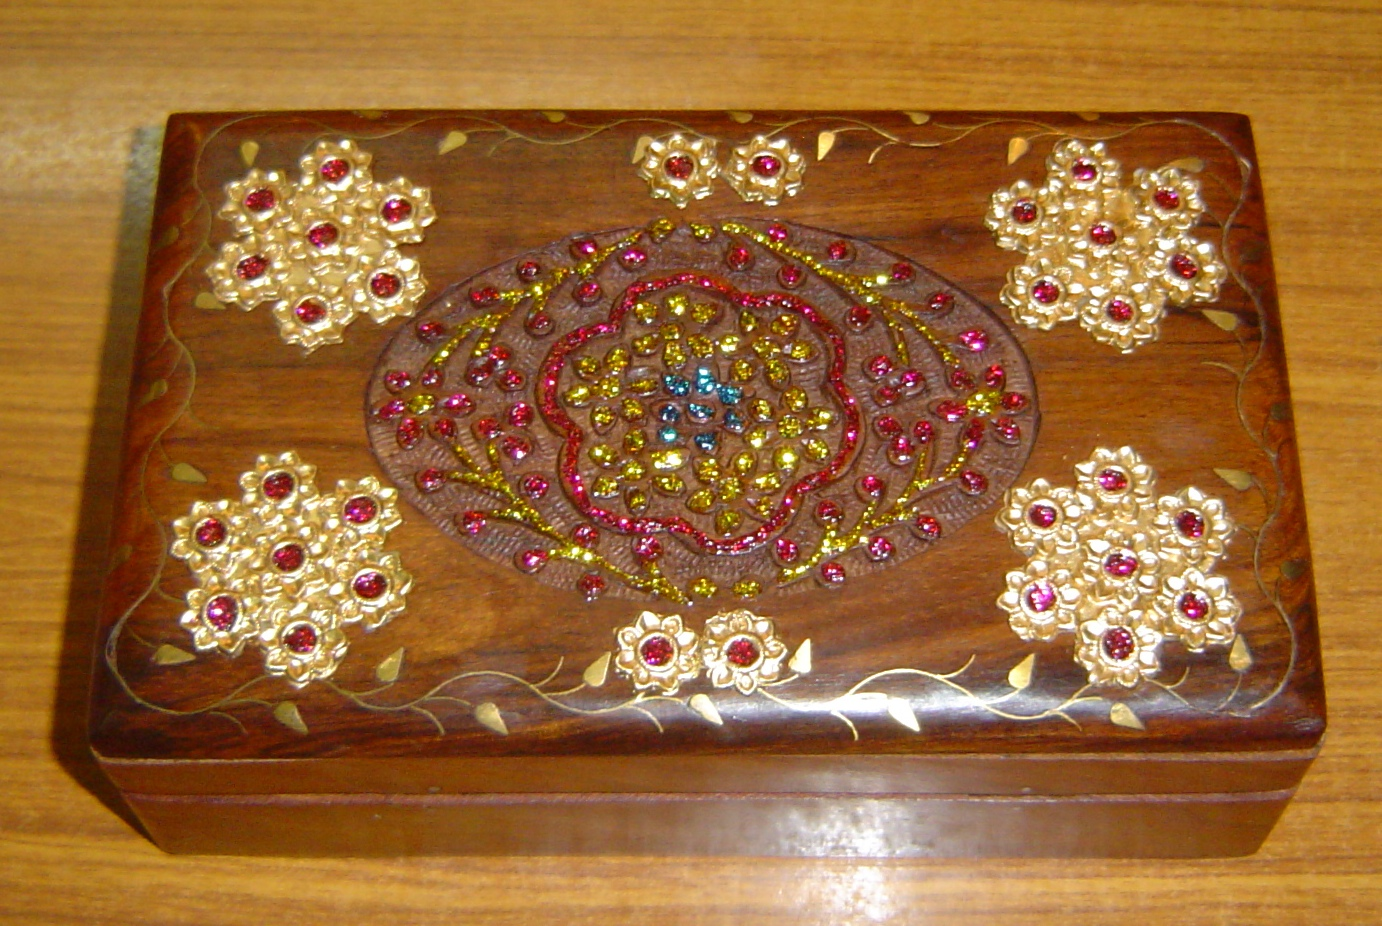 130029 Wooden carving and decorative box